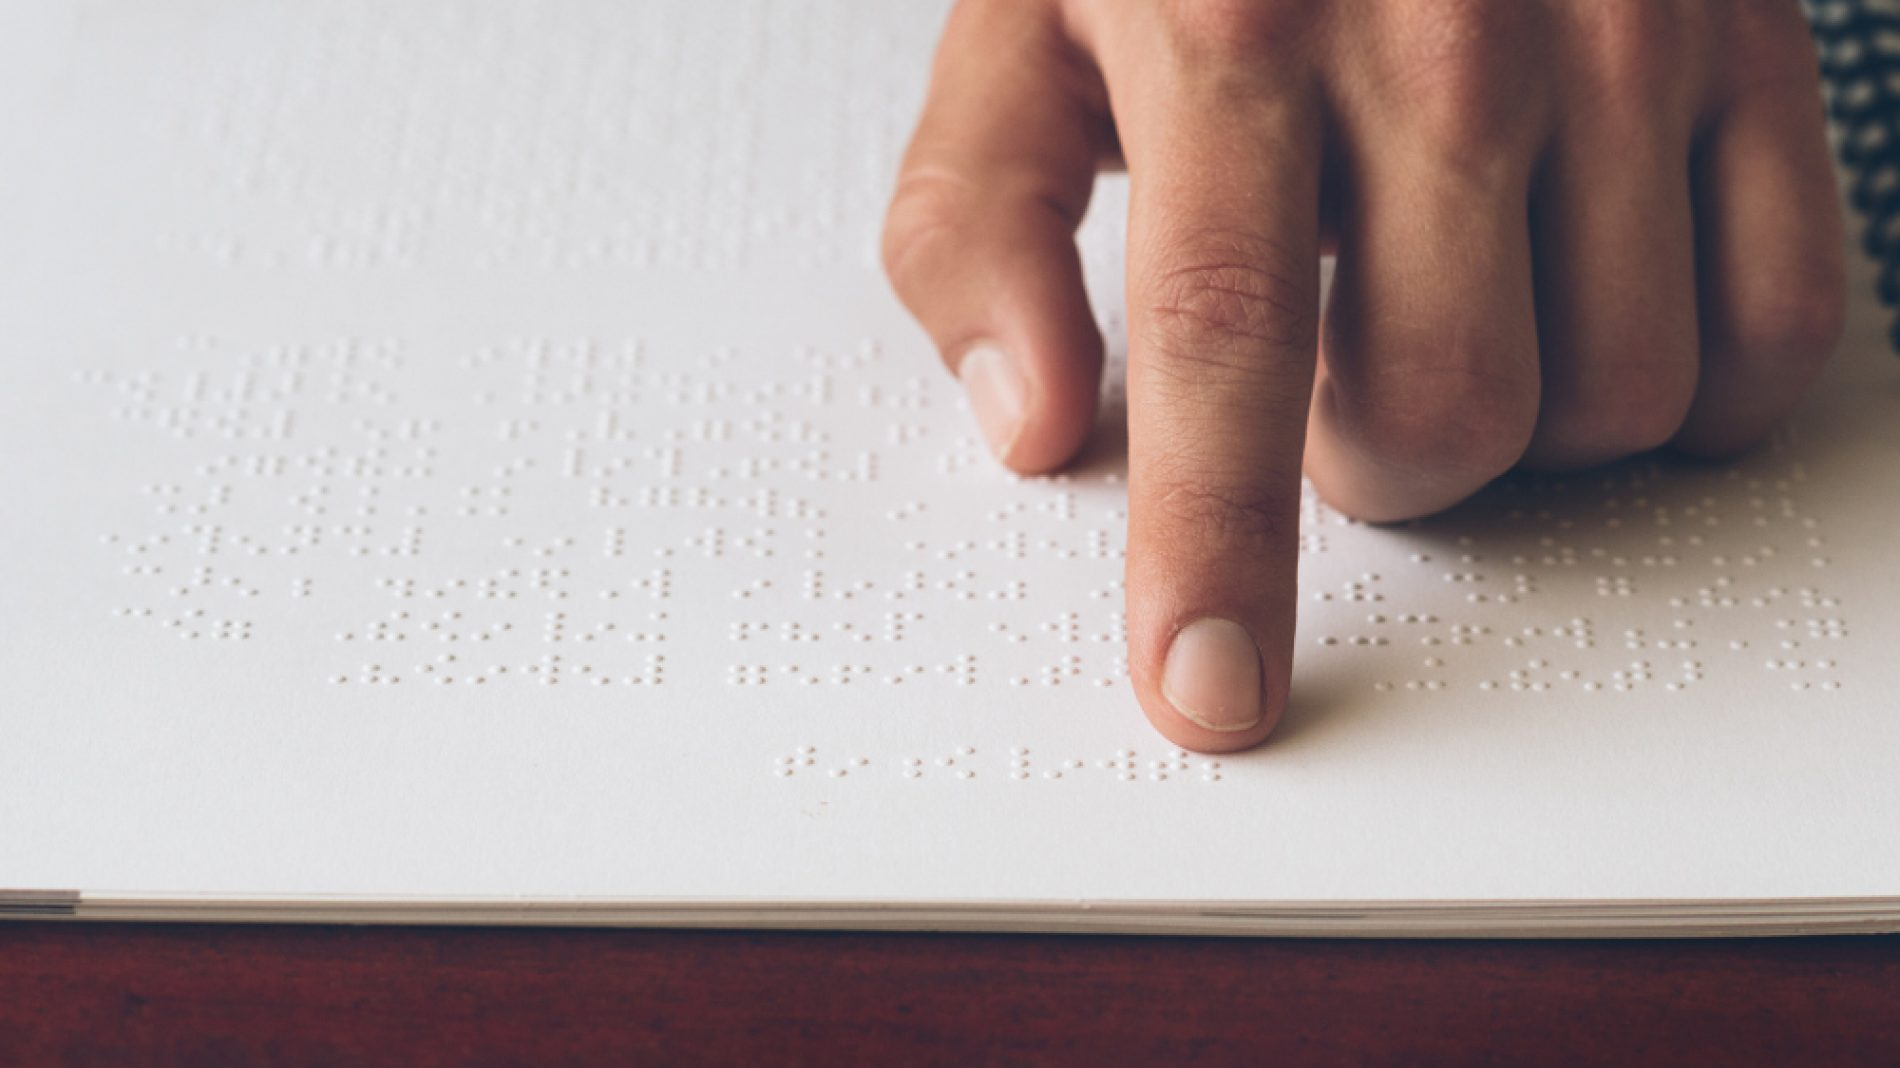 a person reading braille